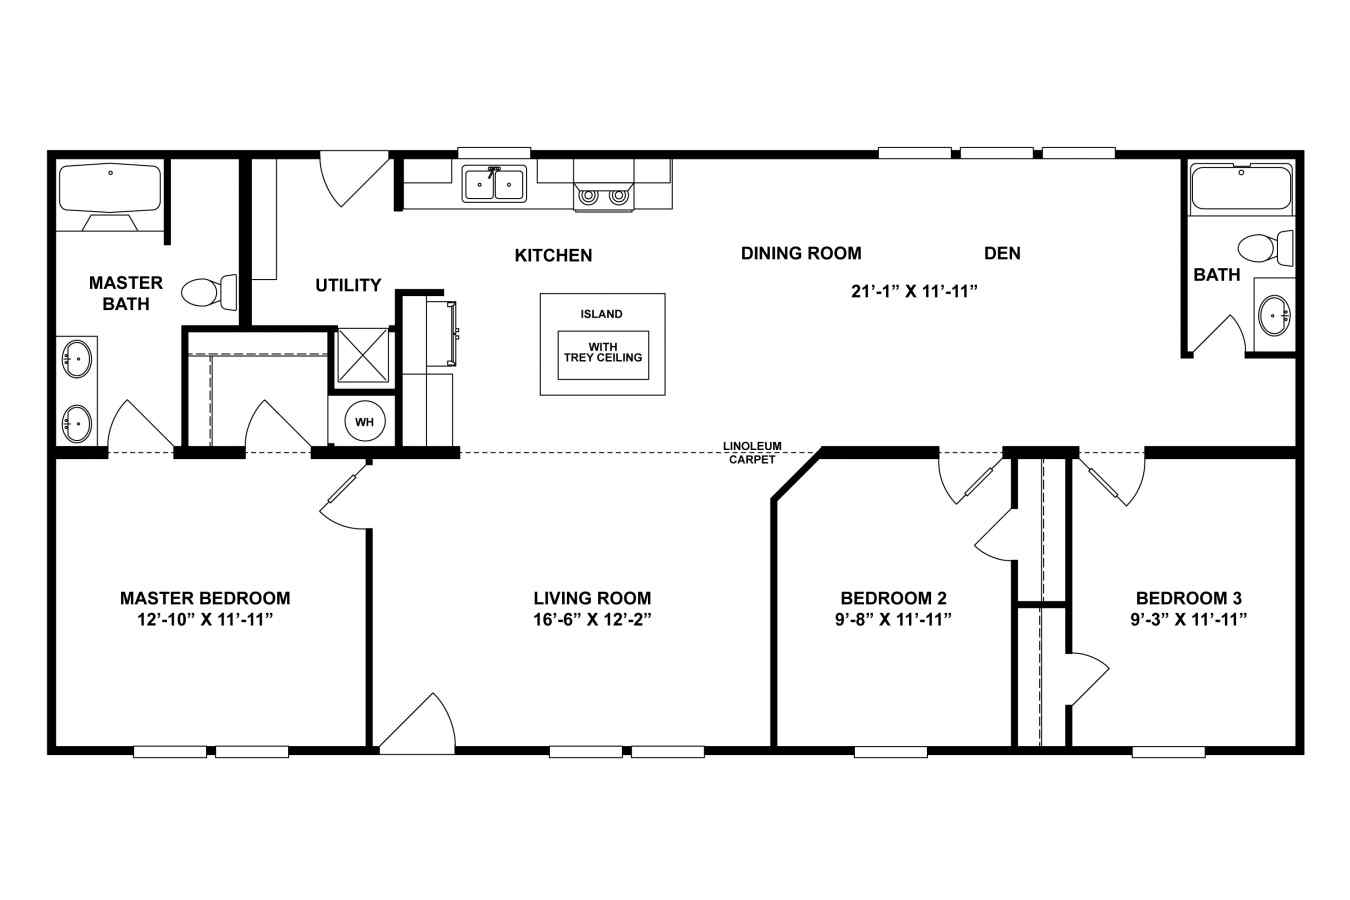 double wide mobile home plumbing diagram